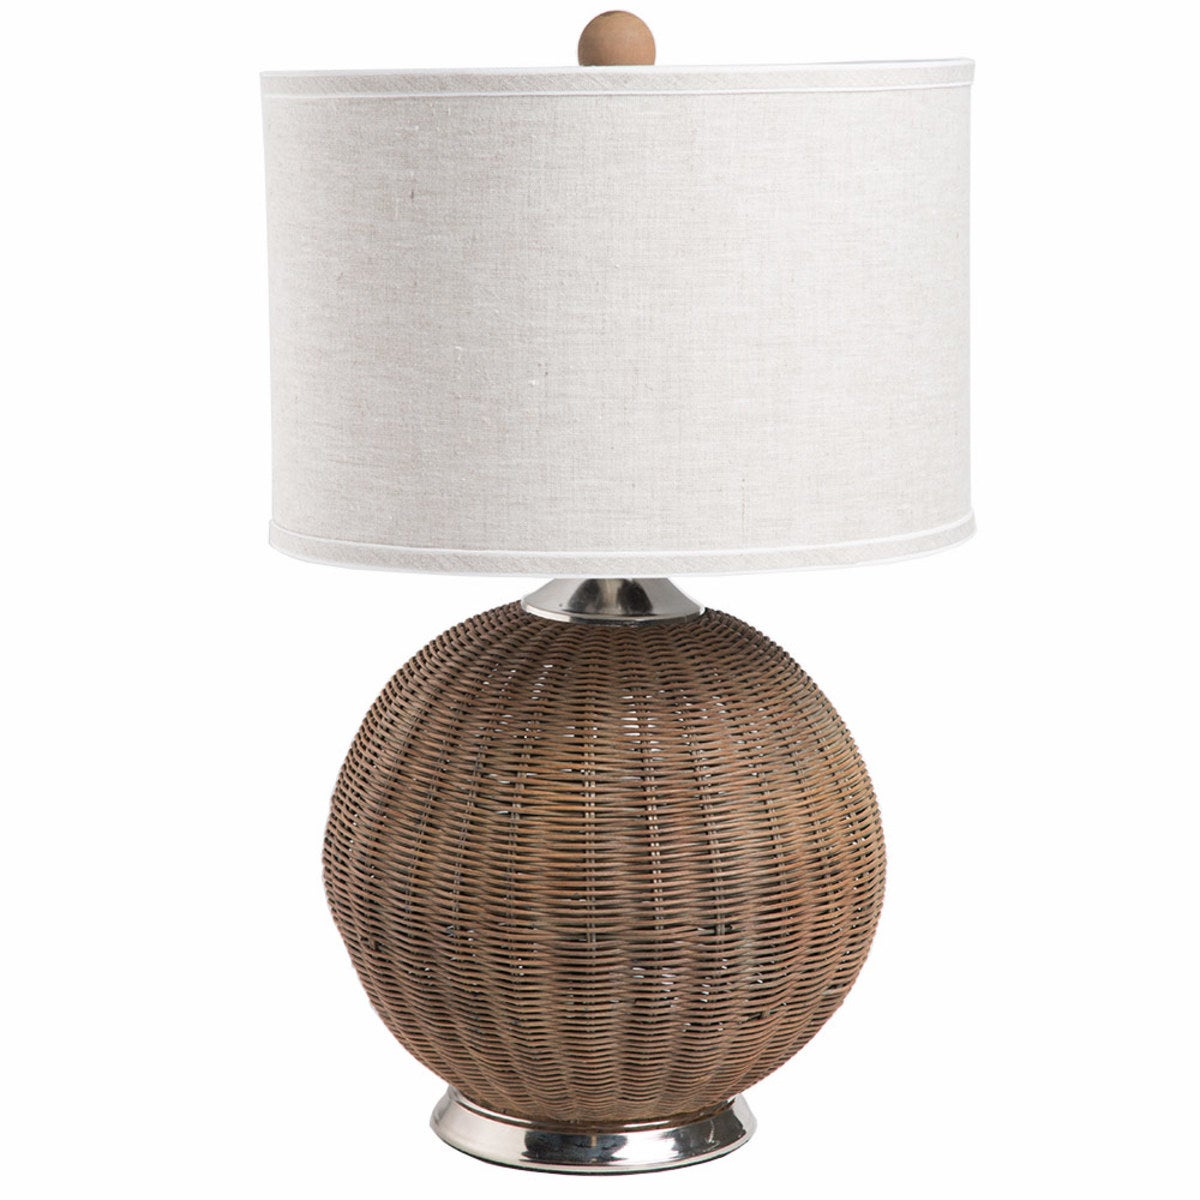 Woven Rattan Temple Lamp